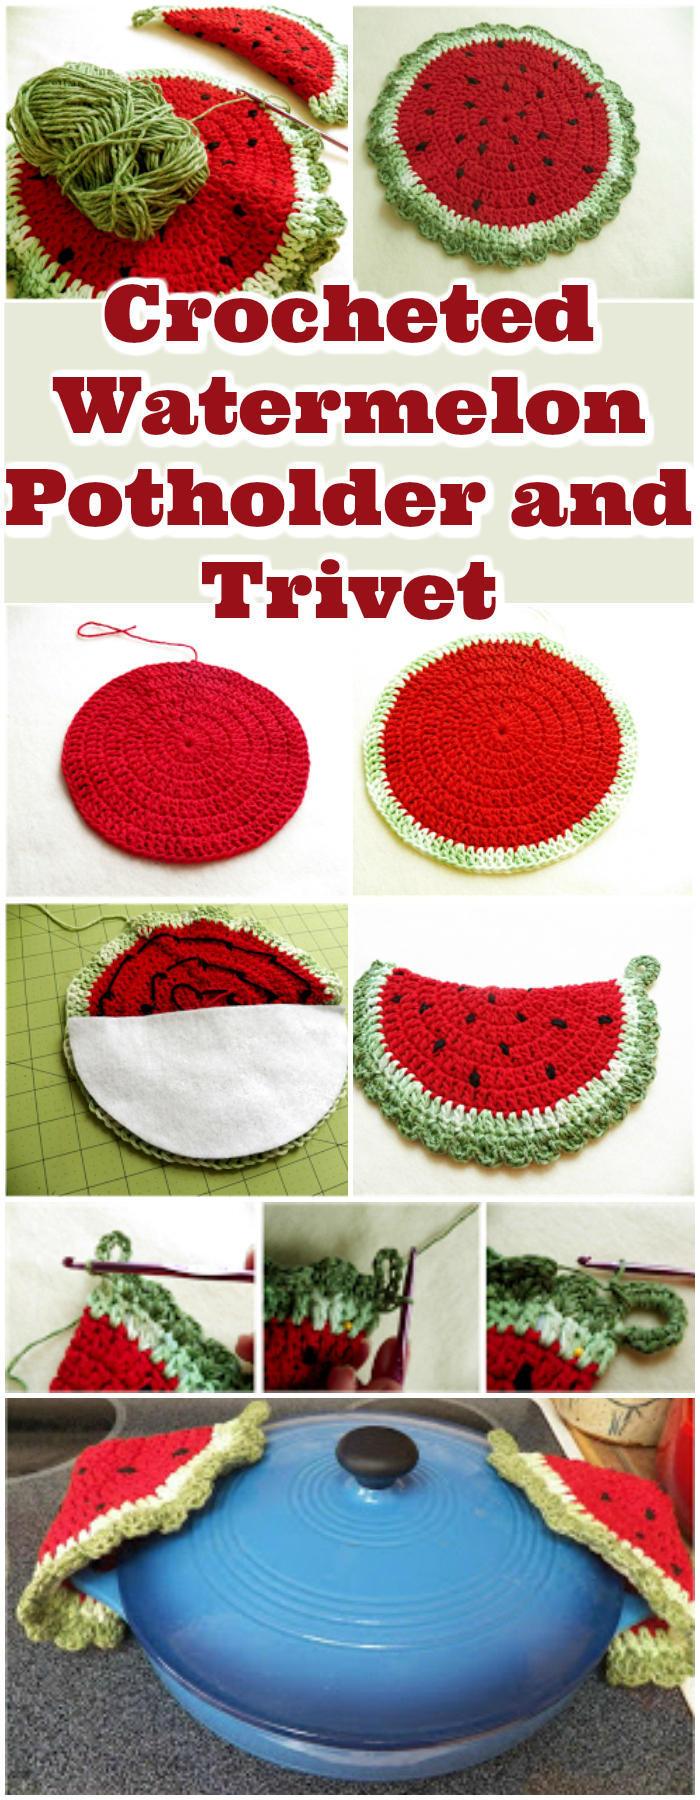 Crocheted Watermelon Potholder and Trivet - free crochet coaster patterns | Free Crochet Coaster Patterns